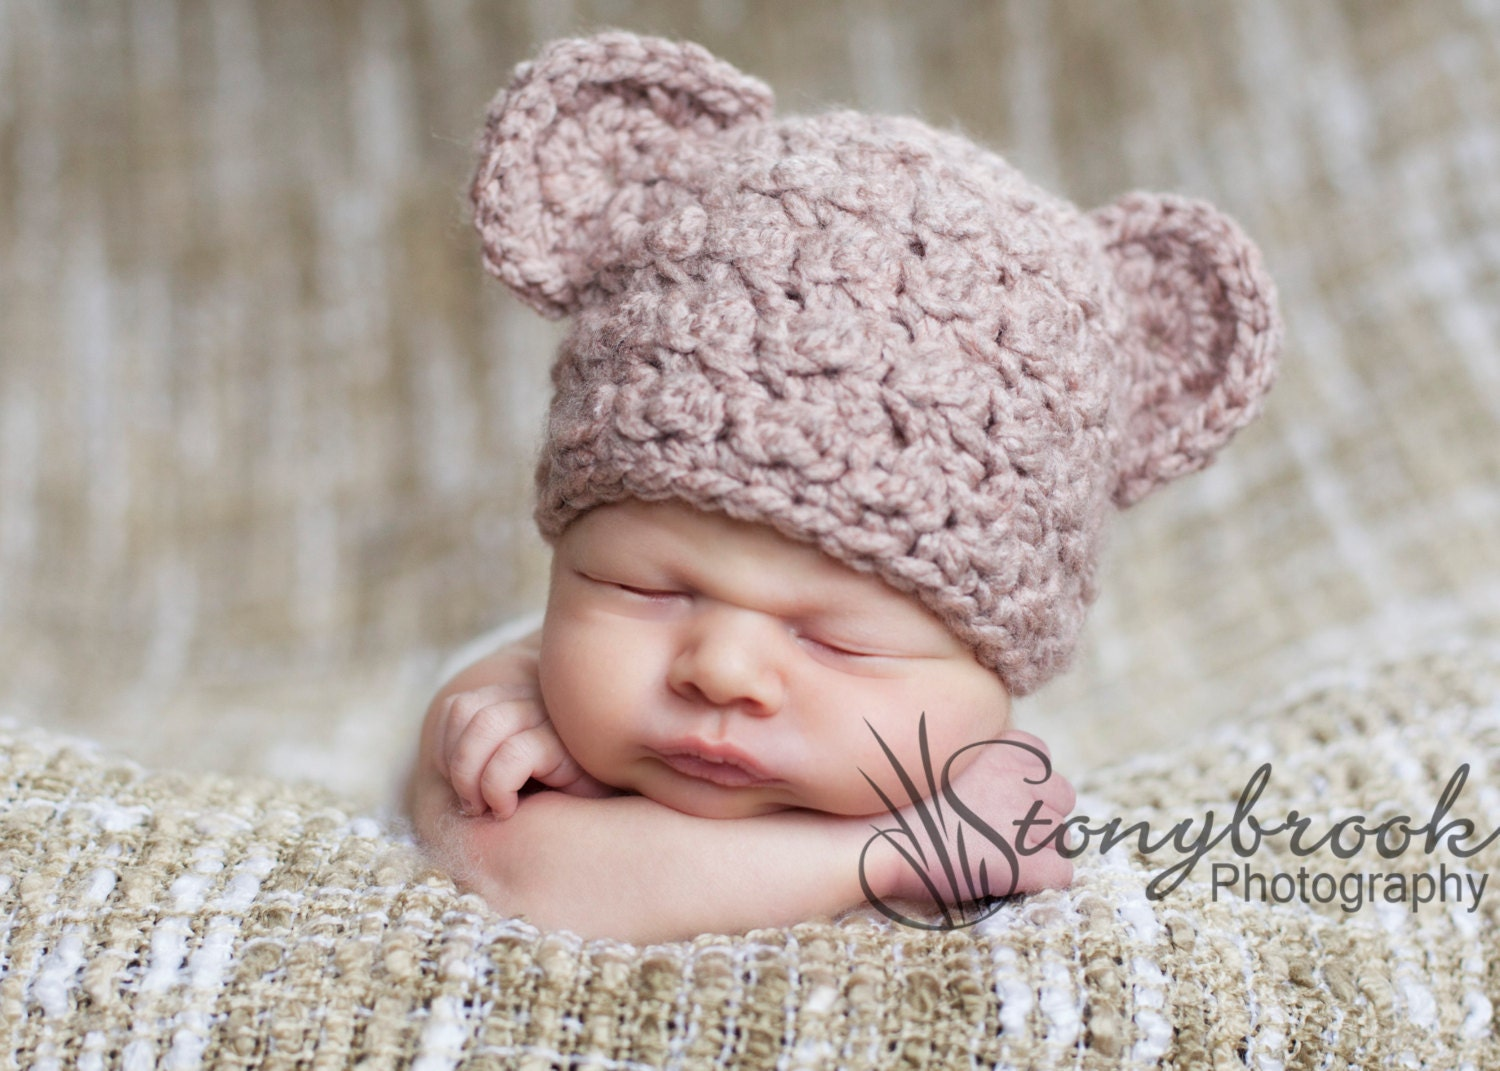 Made to Order Baby Bear Beanie Newborn or 1-3mo. size